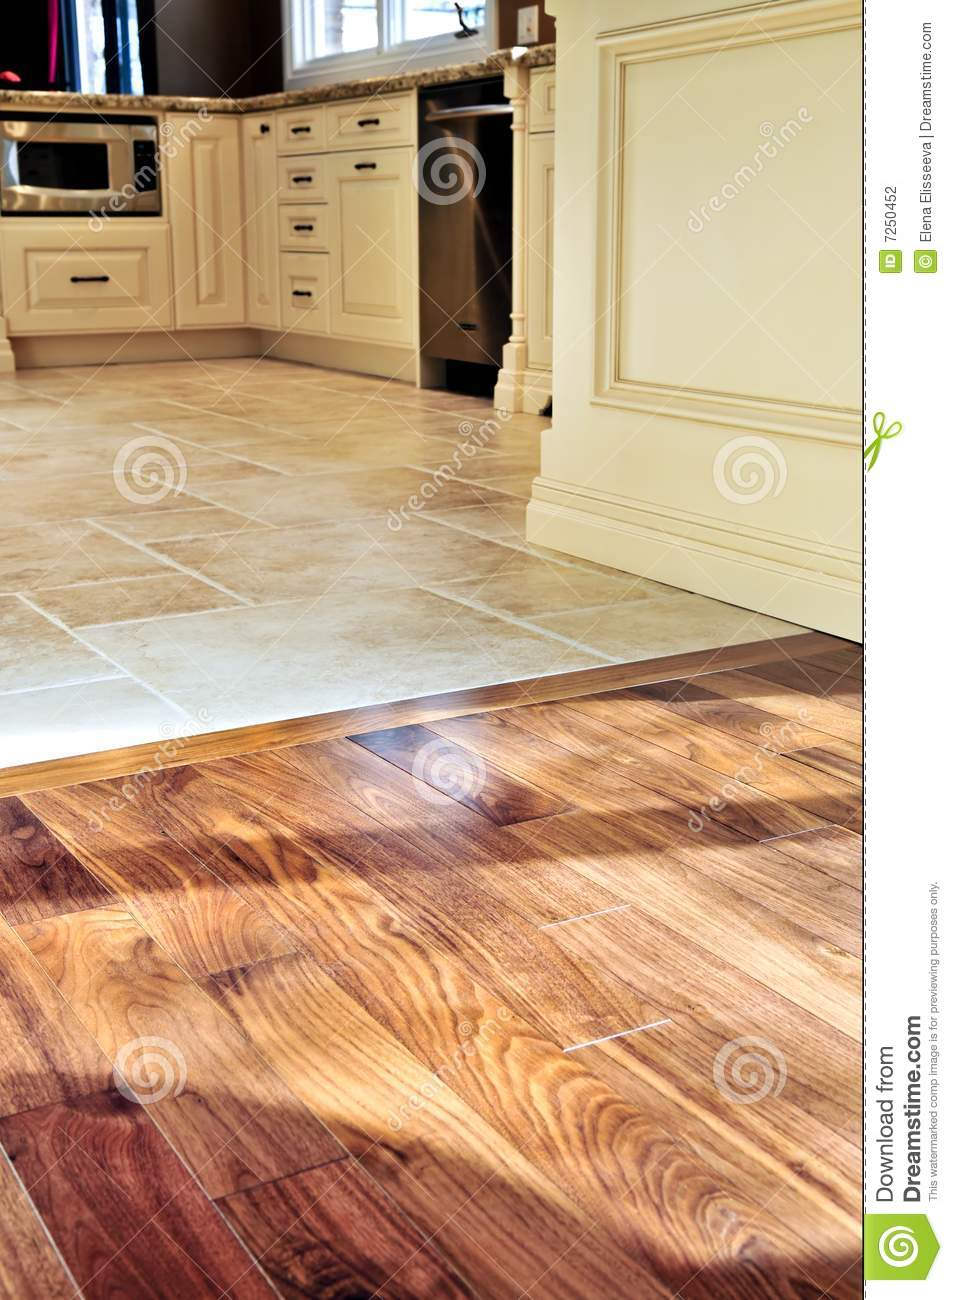 Hardwood and tile floor stock photography image 7250452 for Floor and flooring